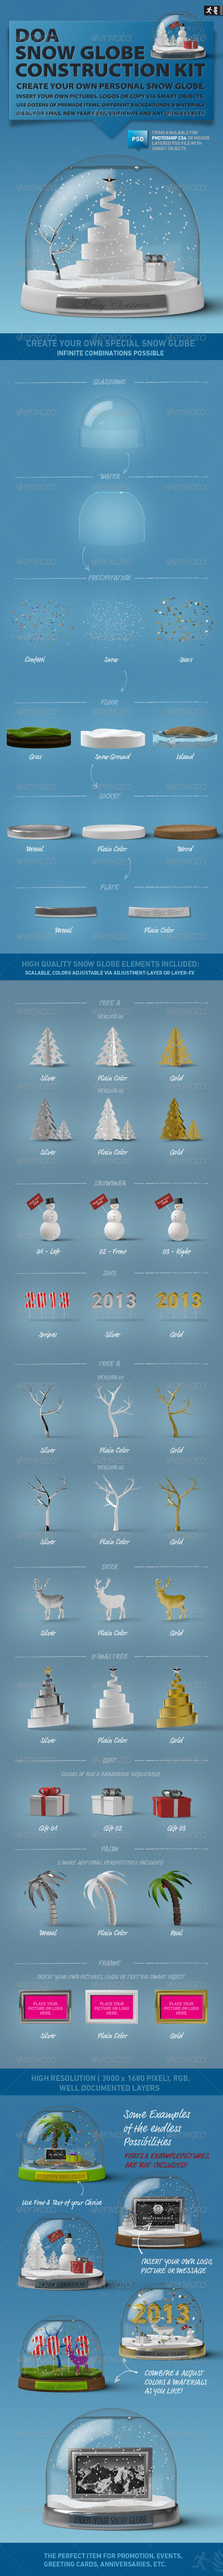 DOA Snow Globe Construction Kit - Miscellaneous Product Mock-Ups